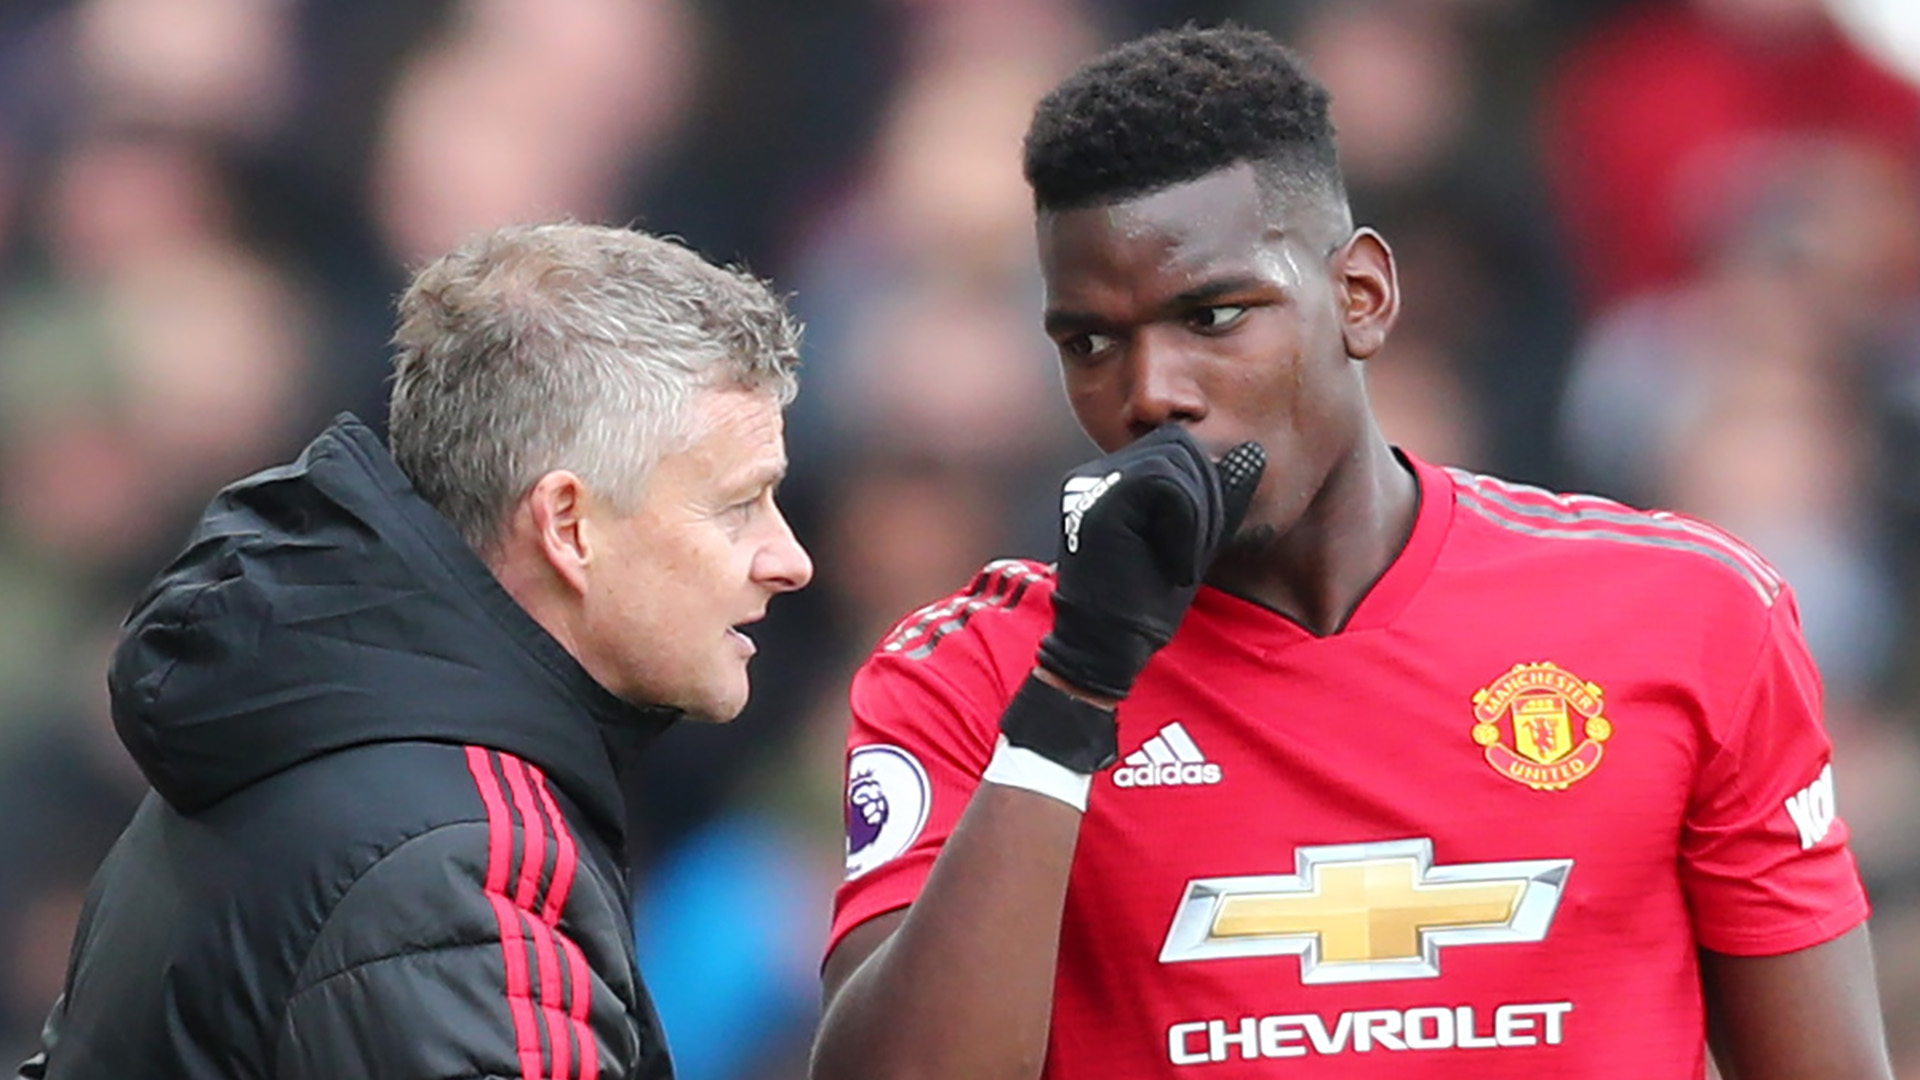 Pogba in contention for Man Utd captaincy despite Real Madrid speculation